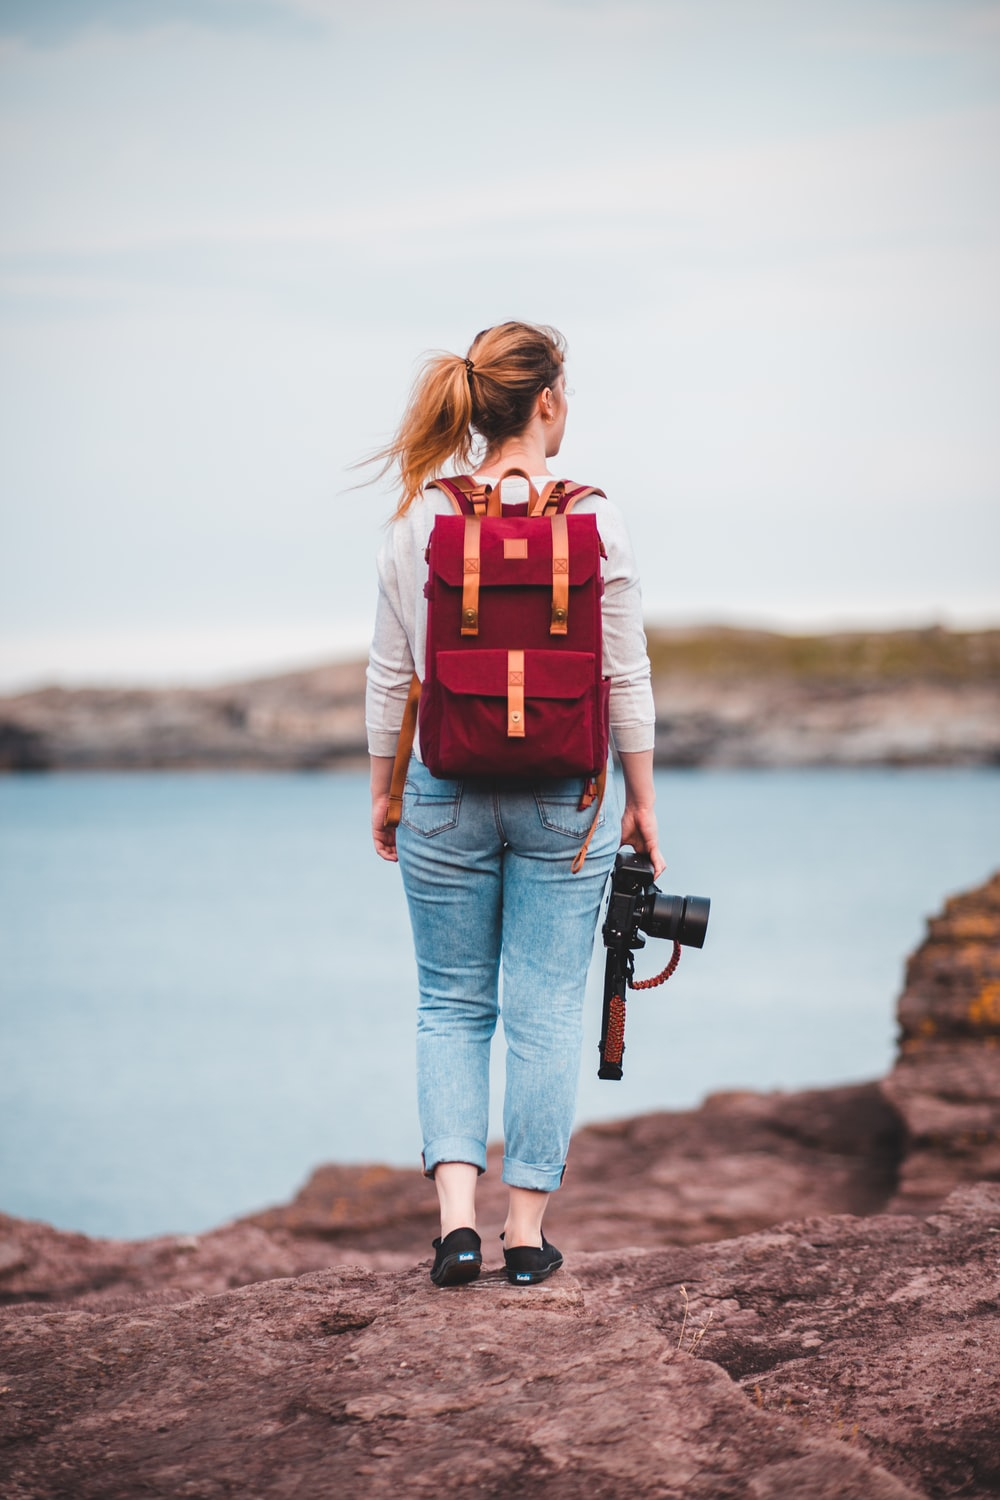 woman in blue denim jeans carrying red and black backpack standing on rock near body of near near near near